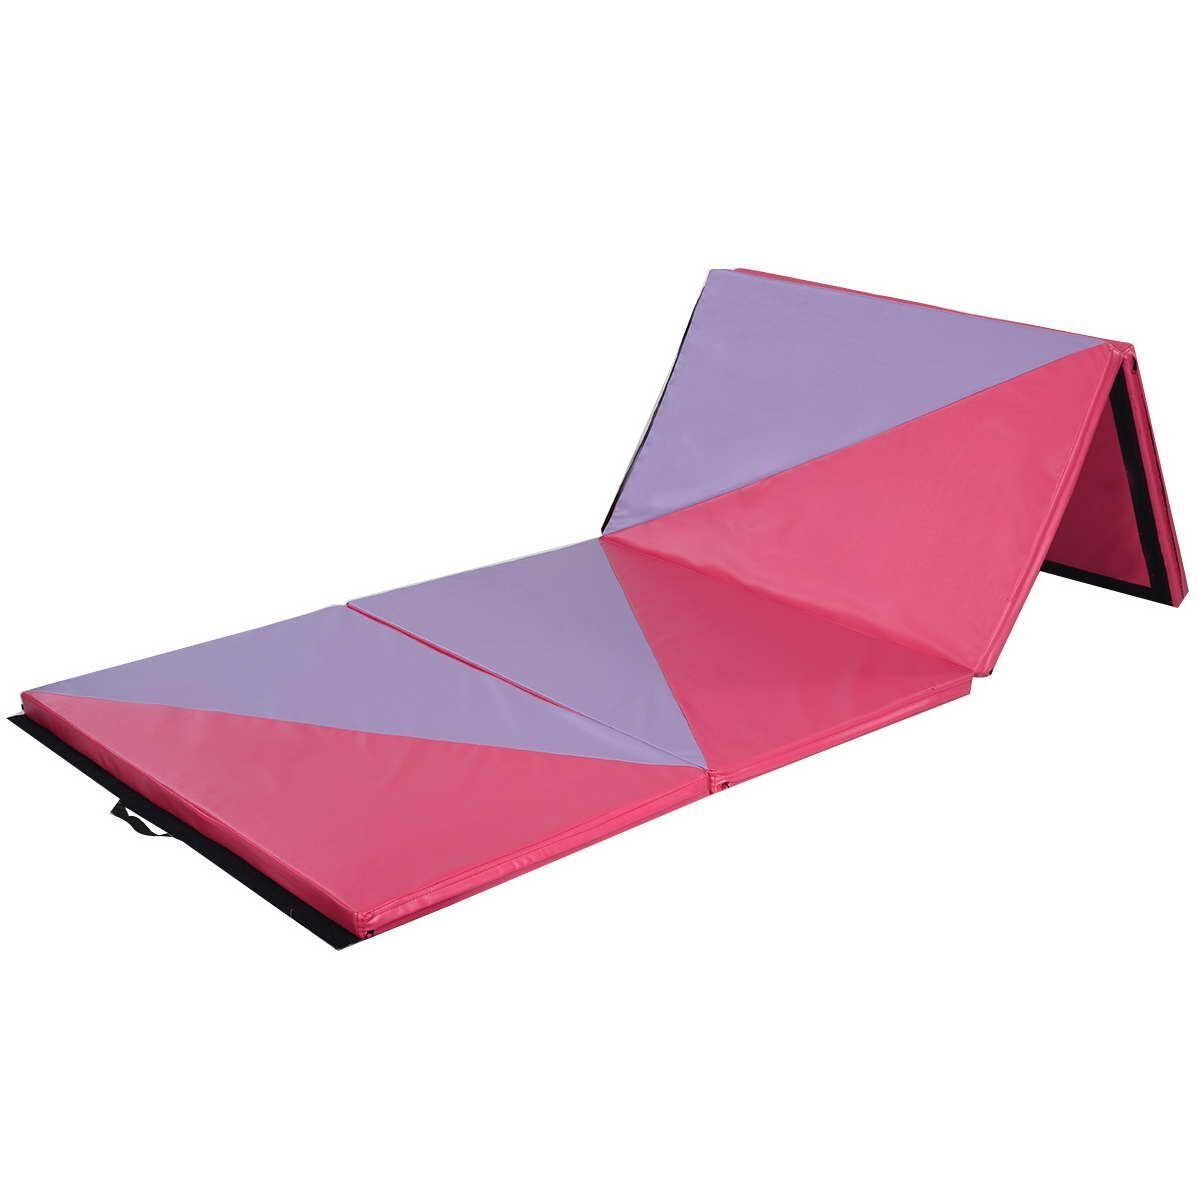 mats for allaboutyouth mat nastia gymnastic use home gymnastics cheap www net